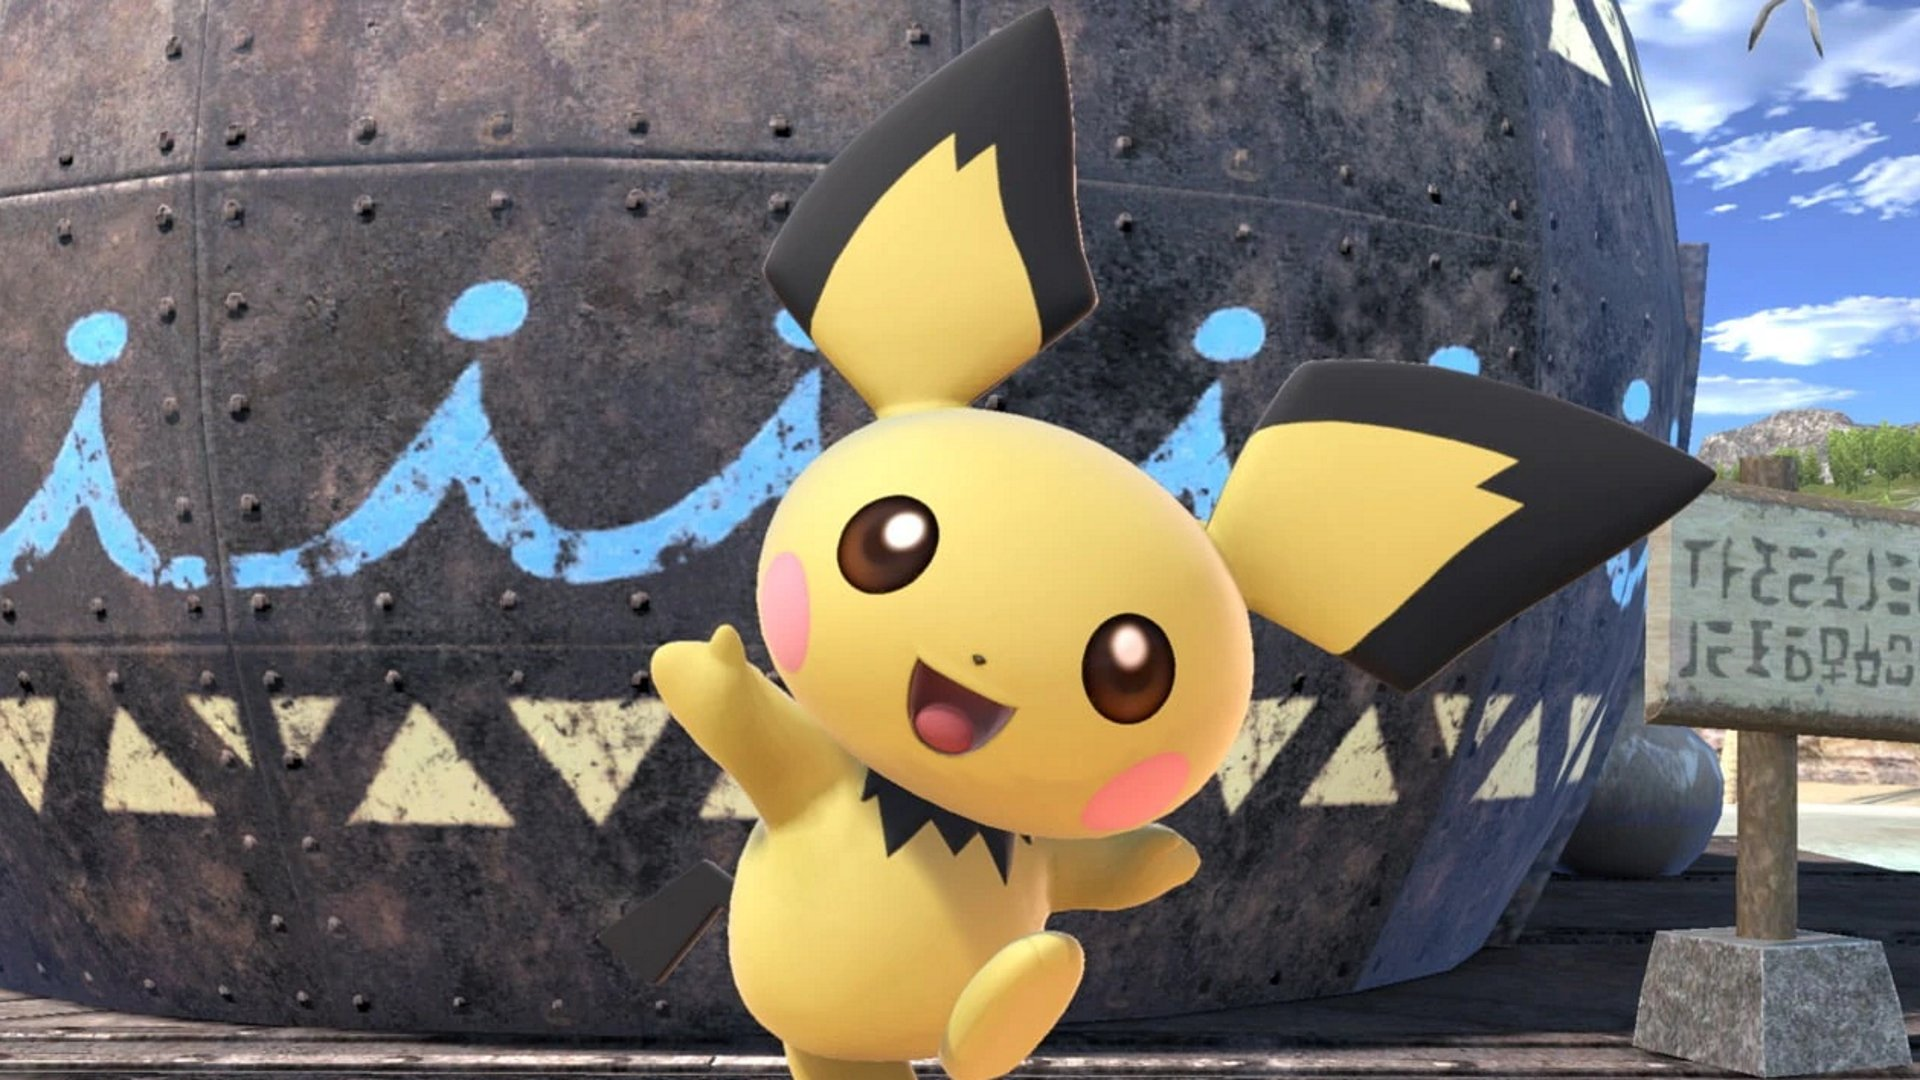 Pichu smiles adorabley in Ultimate. How to get Pichu in Super Smash Bros Ultimate